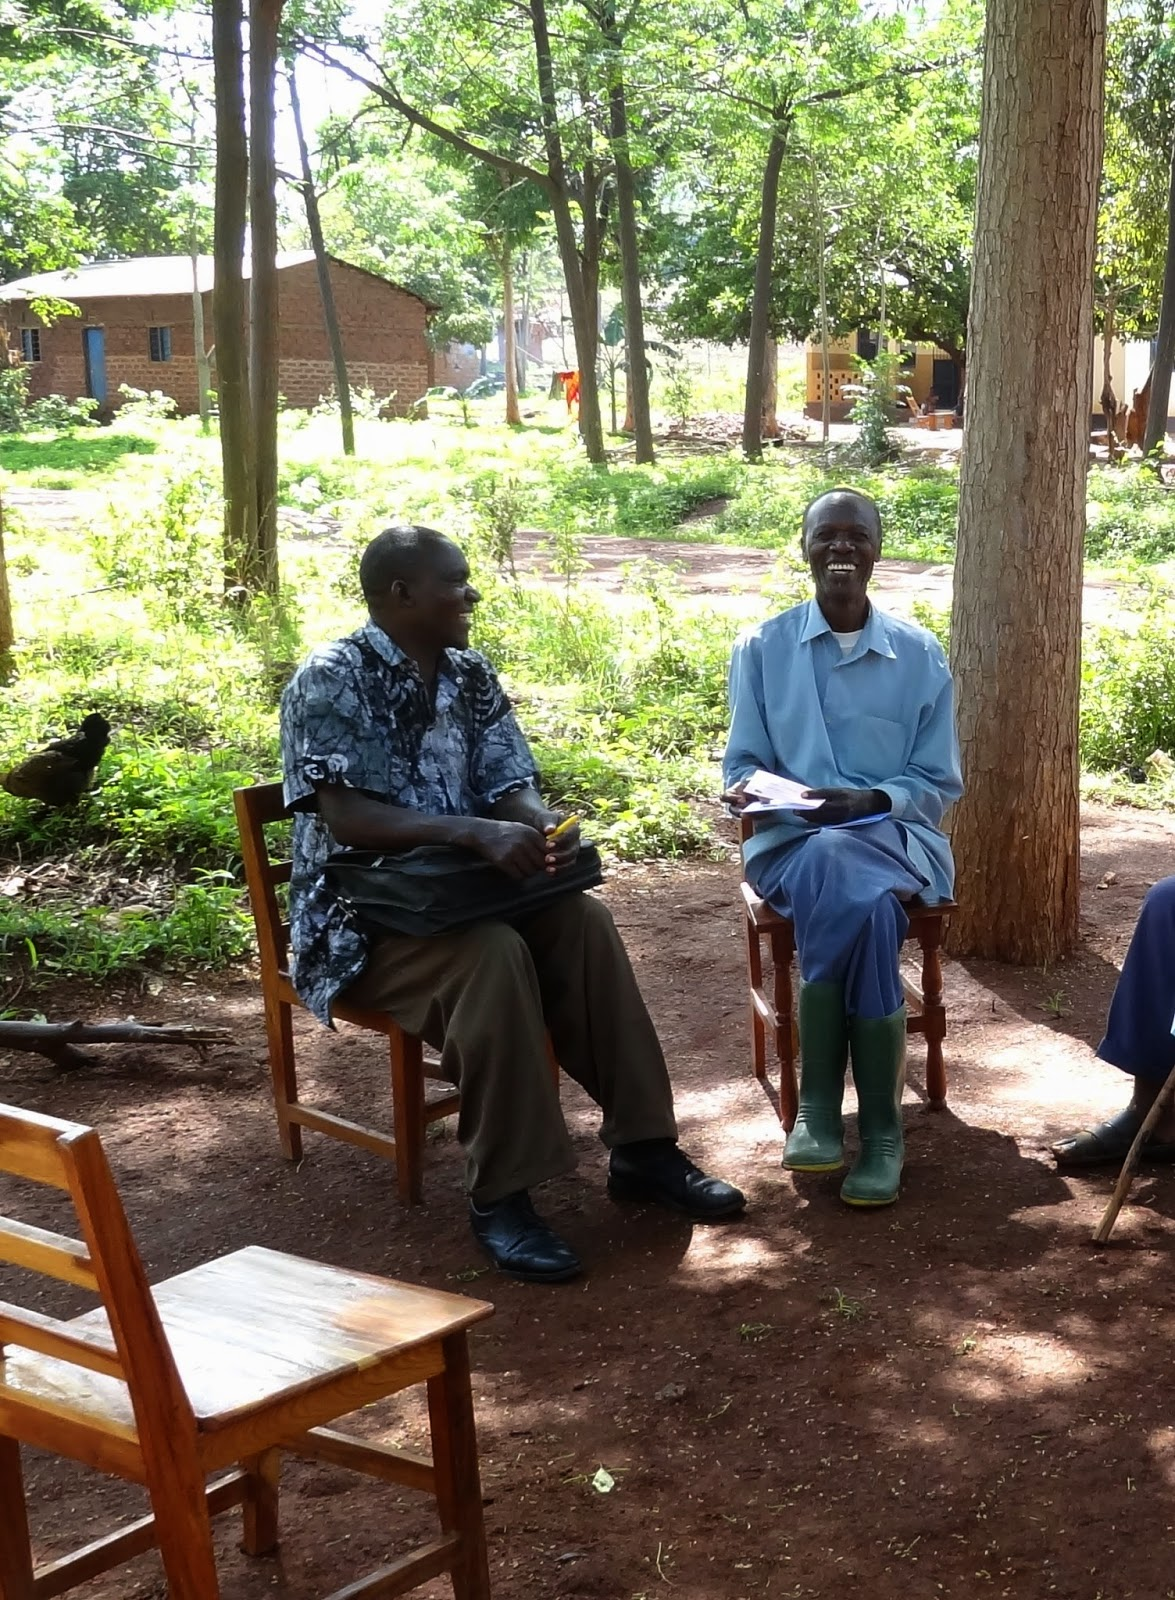 Jita men enjoying a moment in the shade